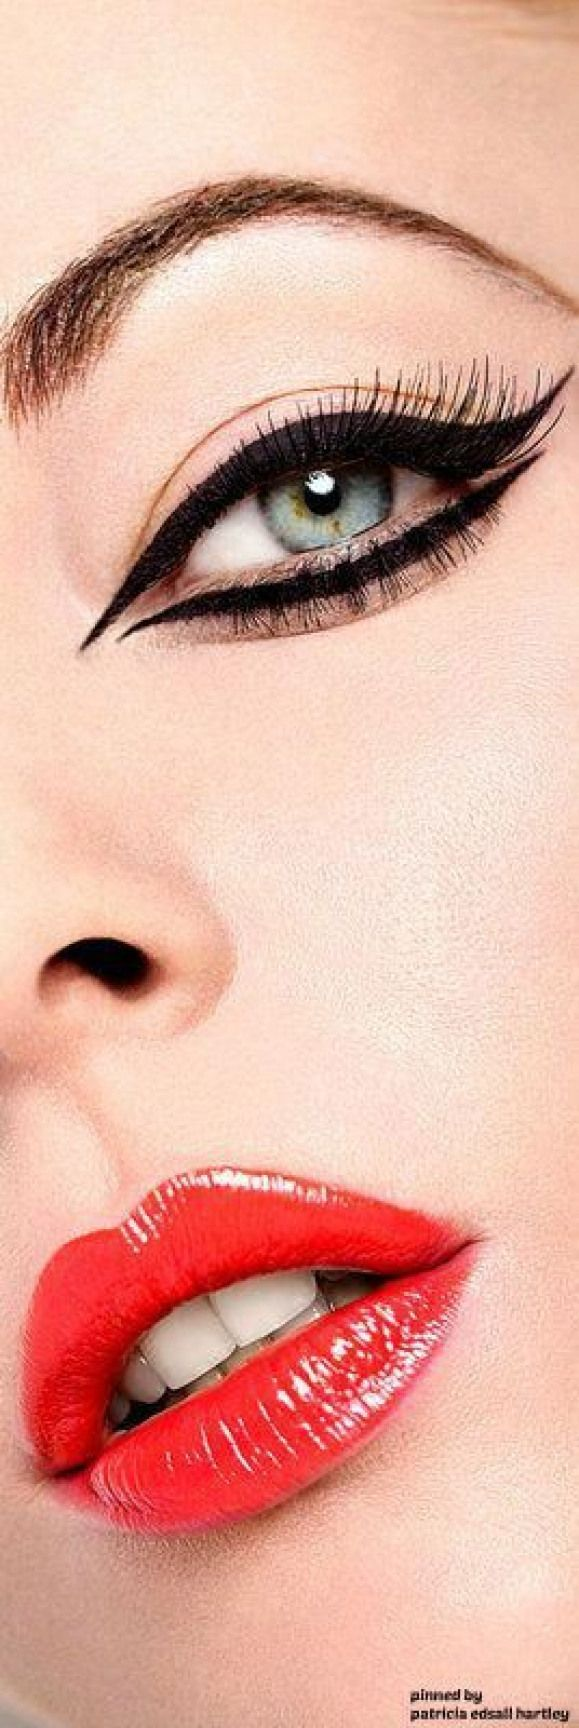 Eyeliner is good for girls depends on each person look at how this ends #eyelinertips #lipmakeup #lip #makeup #editorial #goodeyeliner Eyeliner is good for girls depends on each person look at how this ends #eyelinertips #lipmakeup #lip #makeup #editorial #goodeyeliner